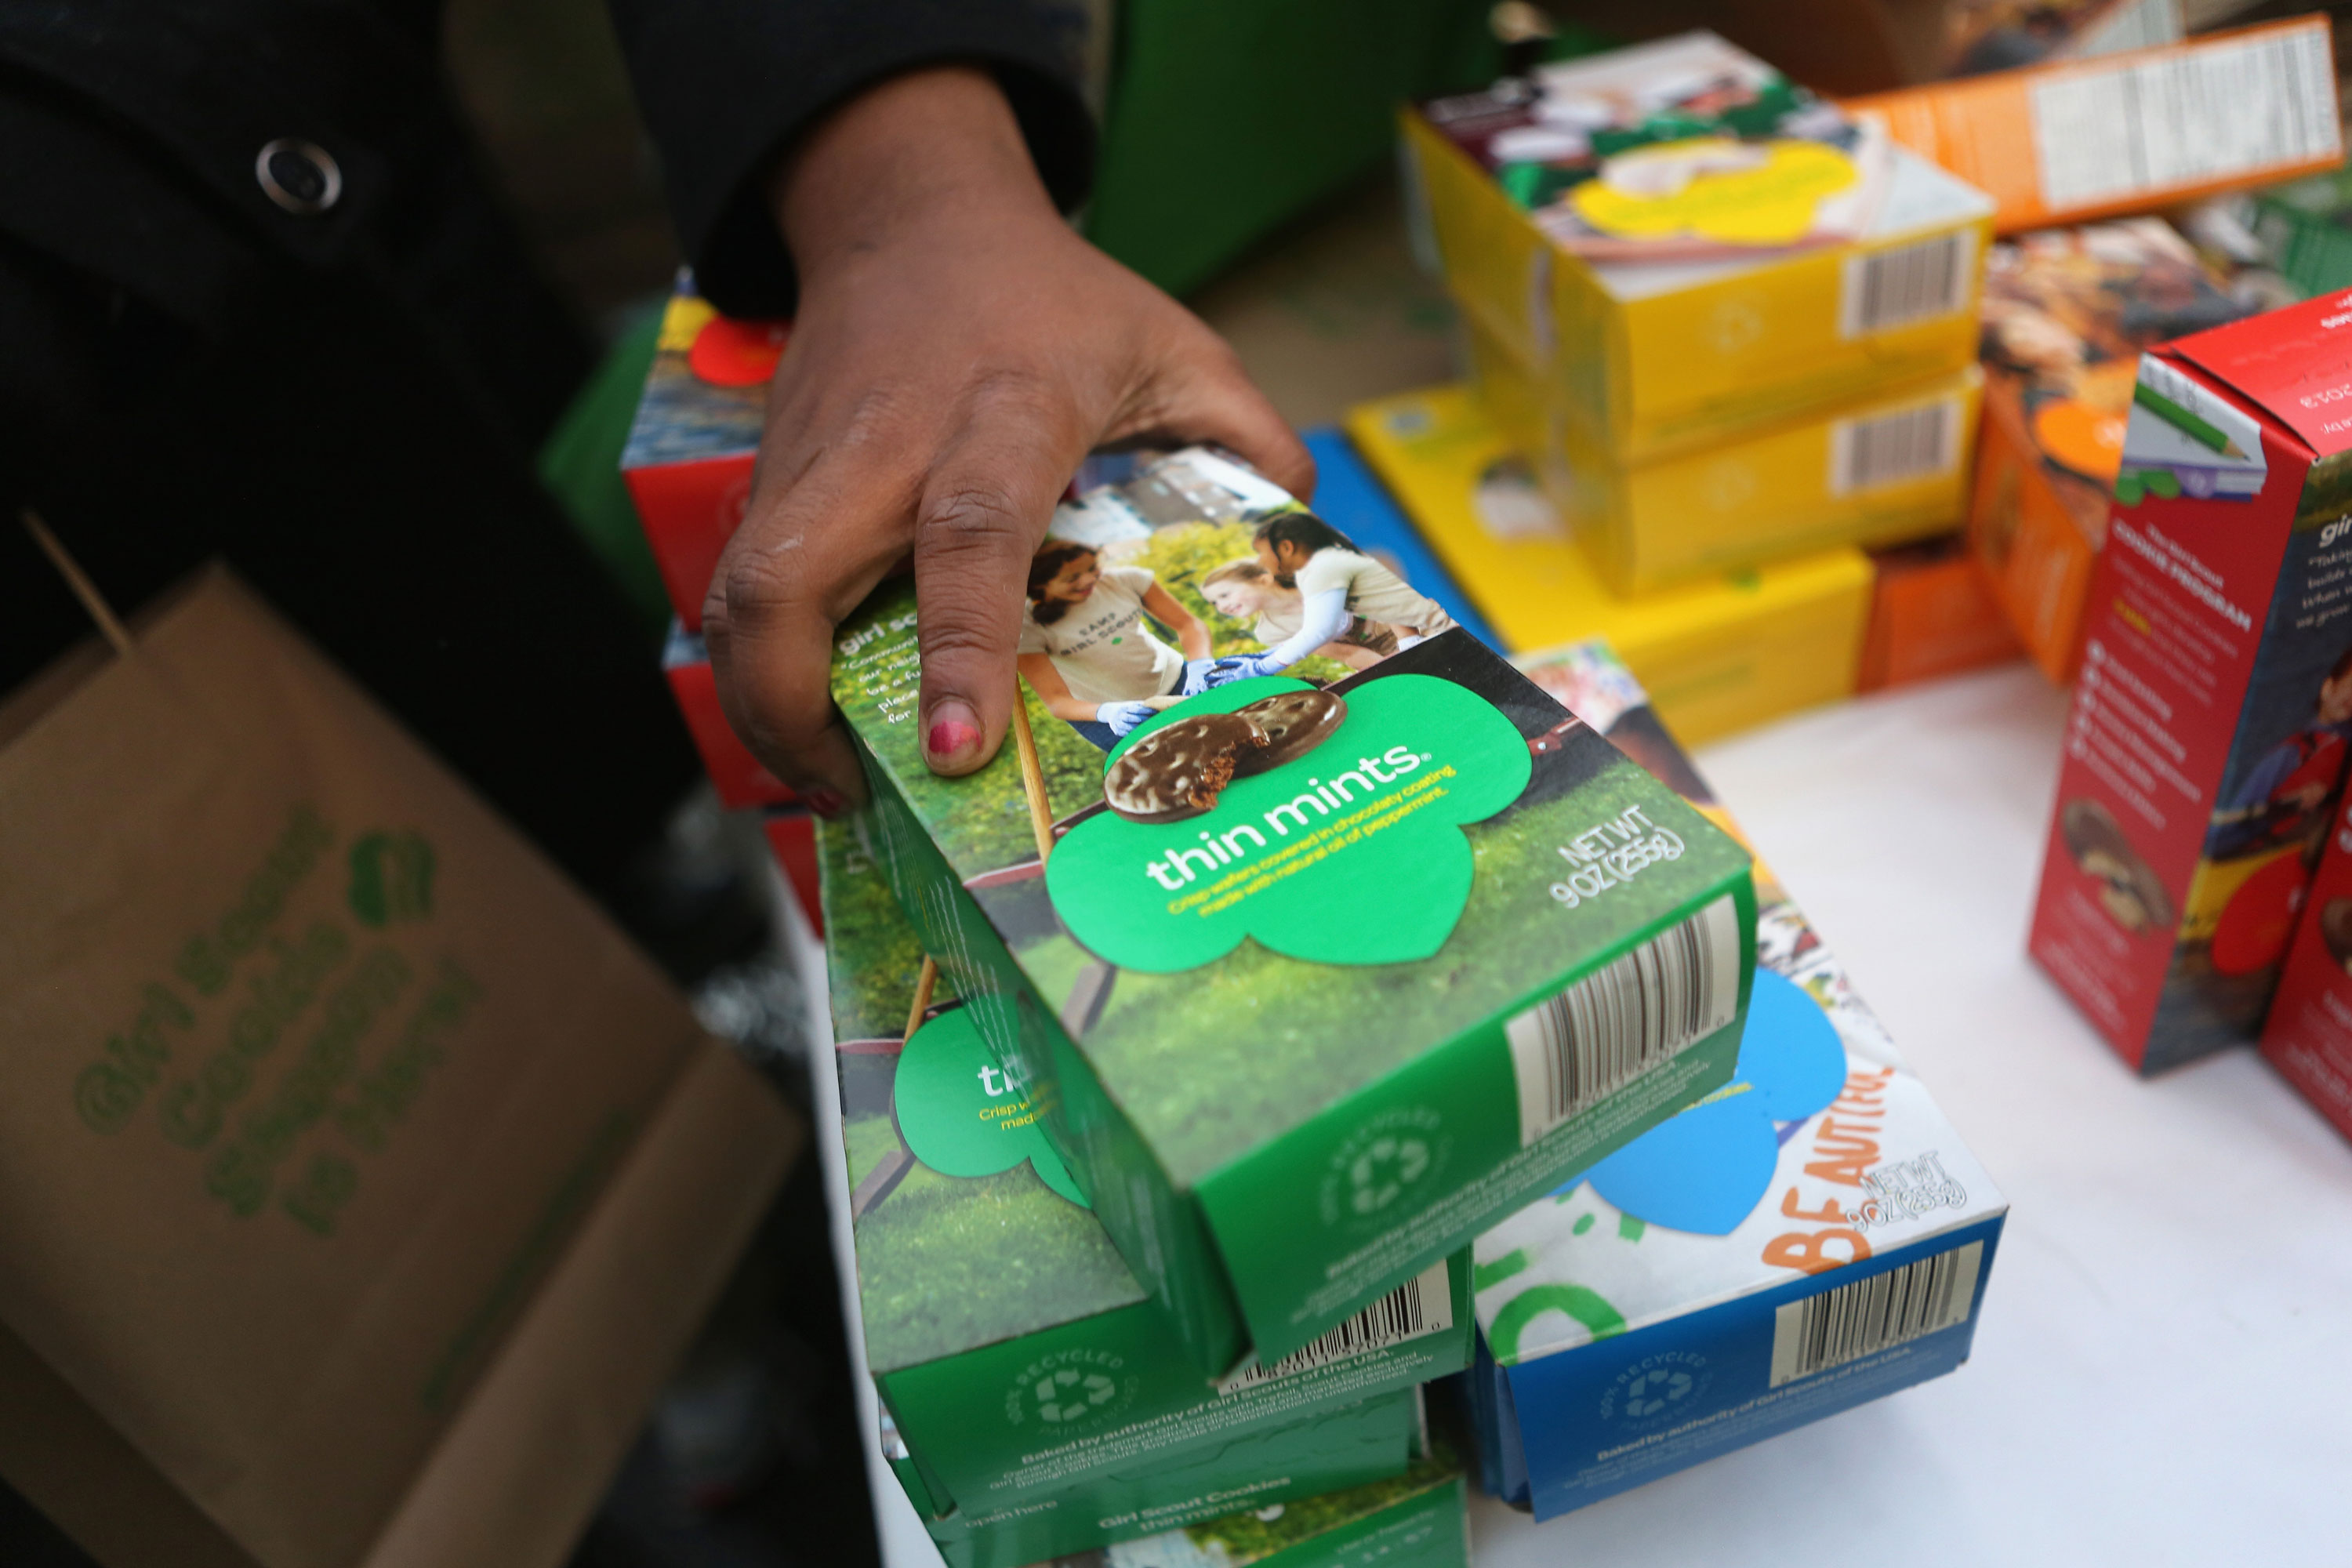 Stuck at home craving Girl Scout cookies? Now you can order them online